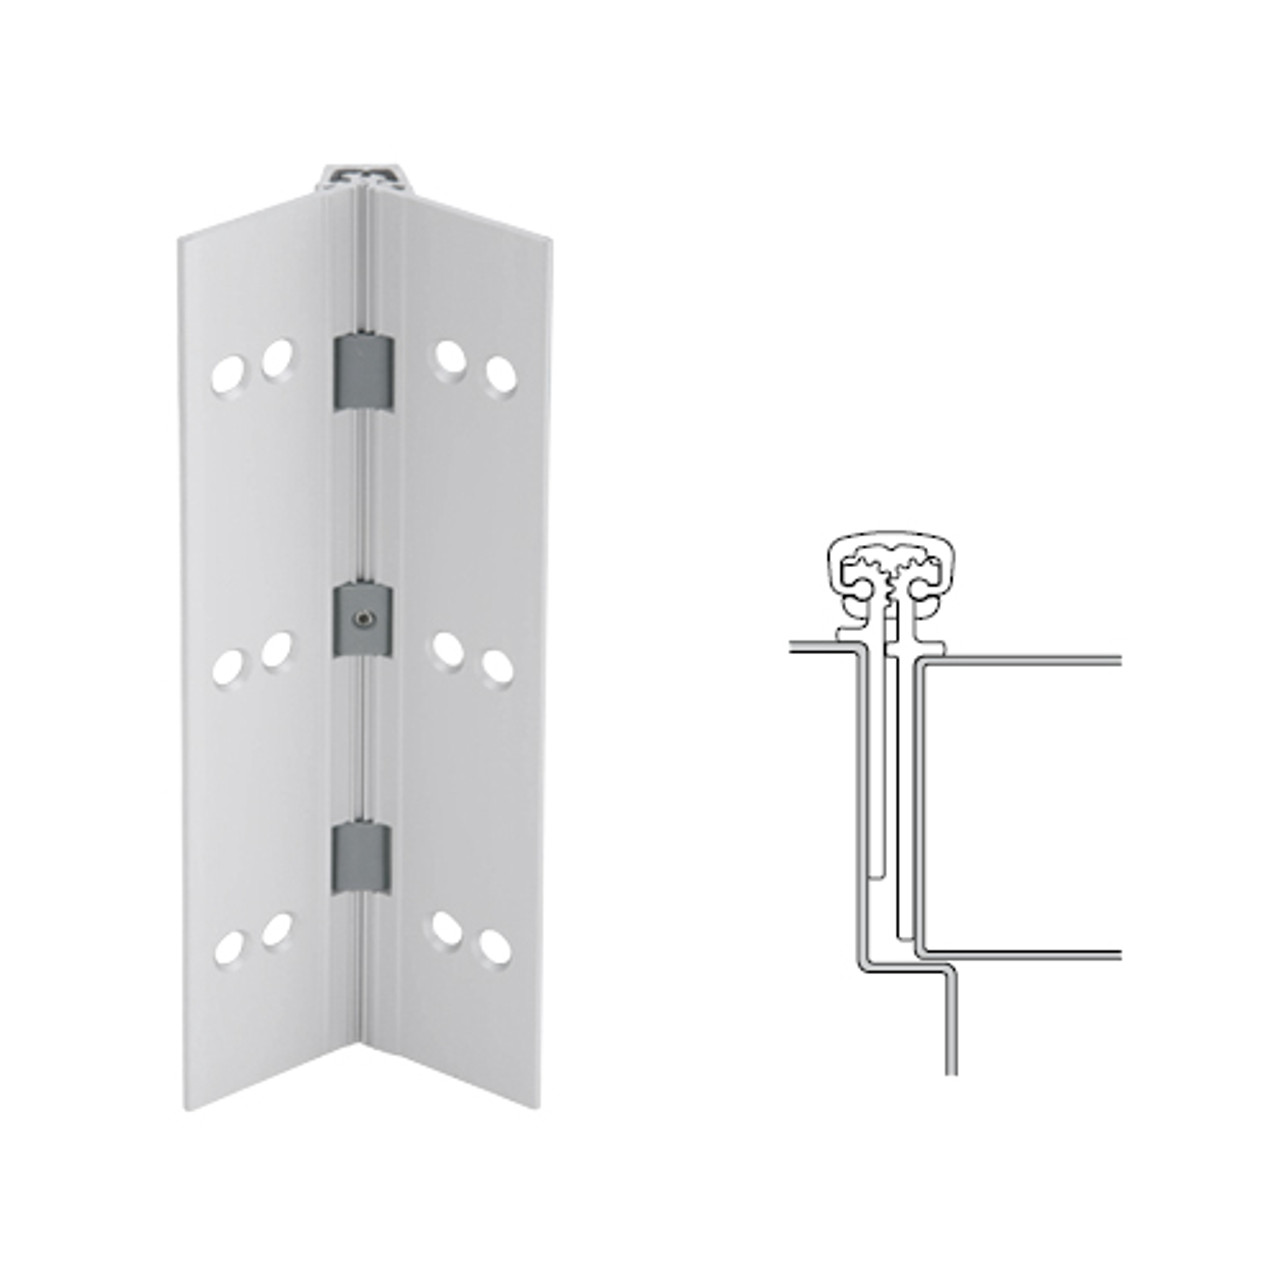 026XY-US28-120-HT IVES Full Mortise Continuous Geared Hinges with Hospital Tip in Satin Aluminum